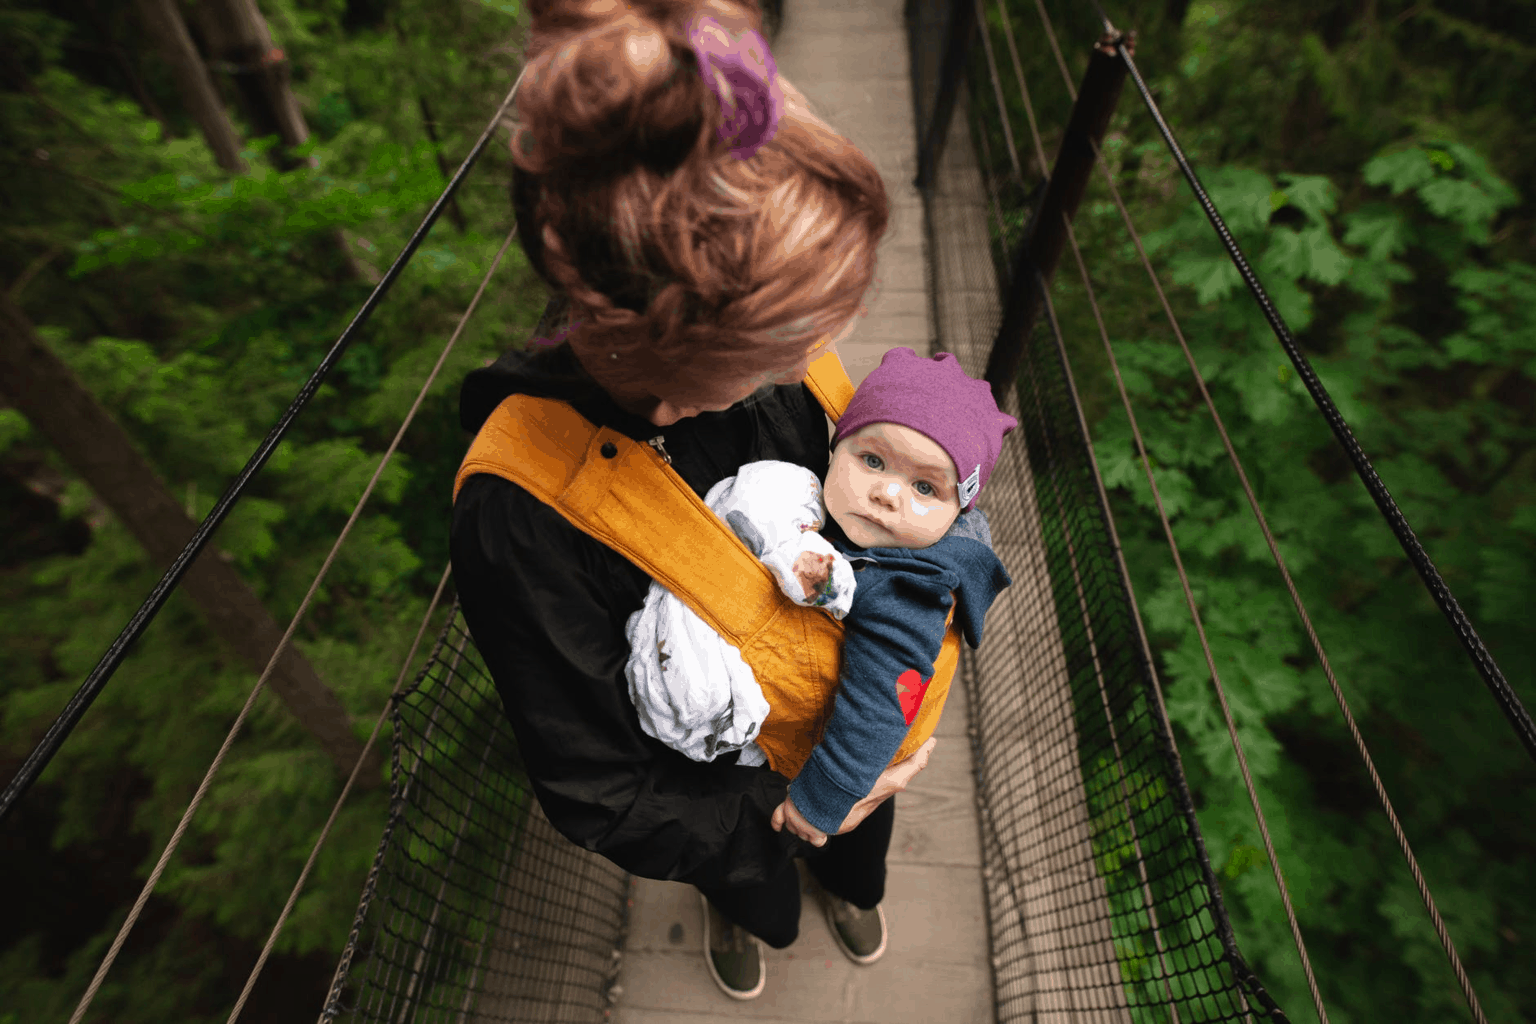 Types of Baby Carrier | Baby Carrier vs Wrap vs Sling: The Basics of Babywearing | Baby Journey